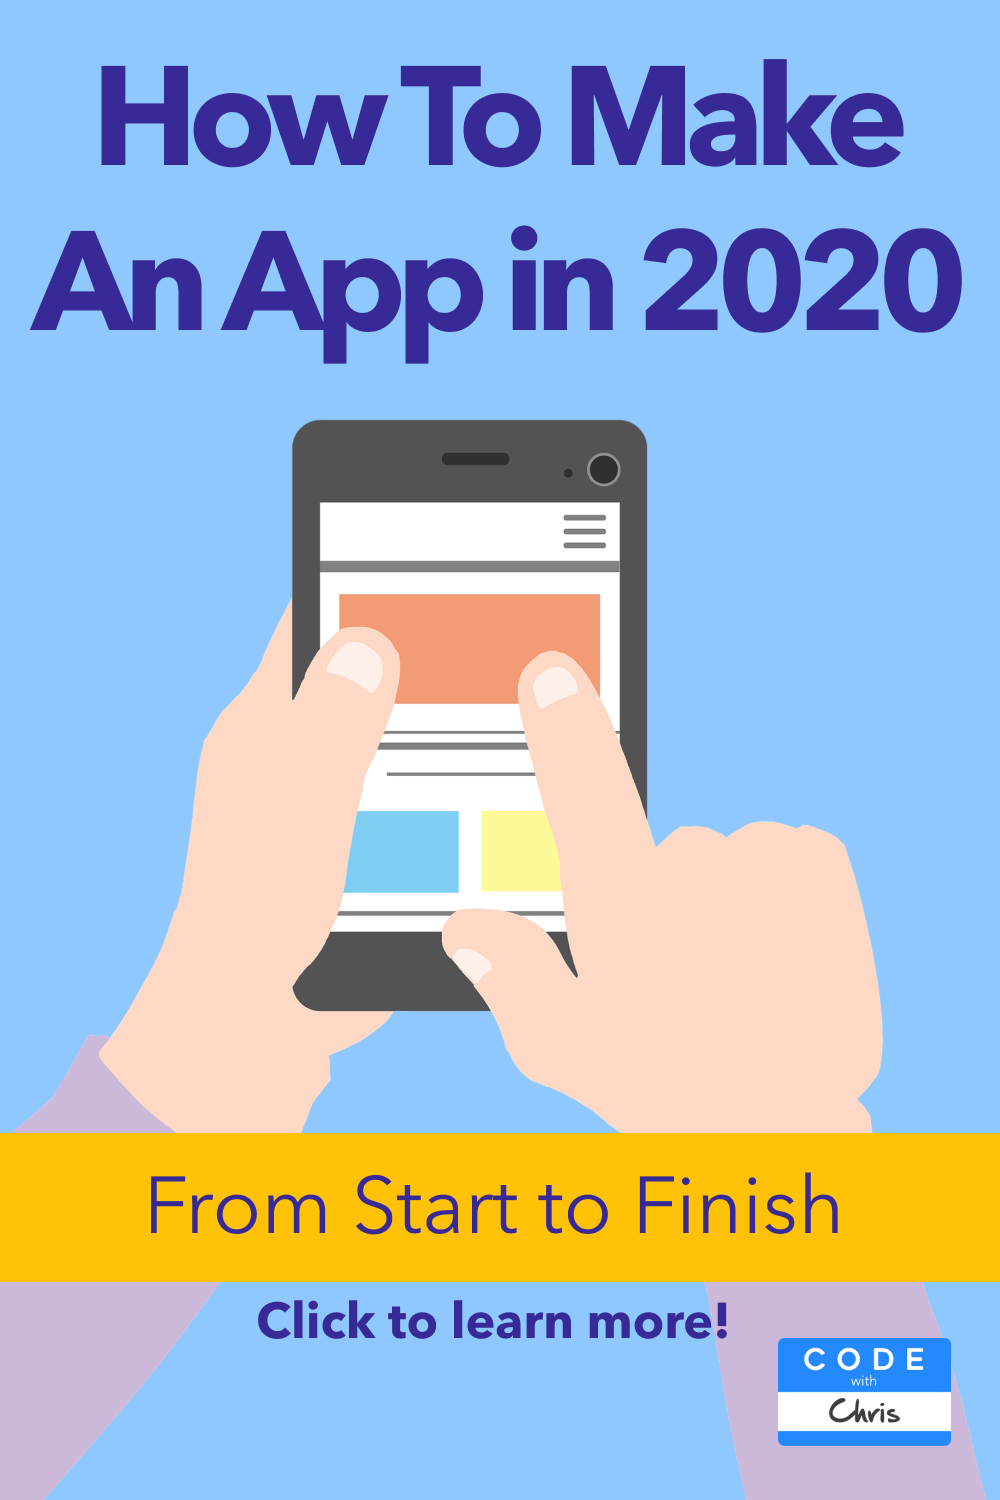 How To Make An App In 2020 From Start To Finish 10 Steps In 2021 App Development Ios App Development App